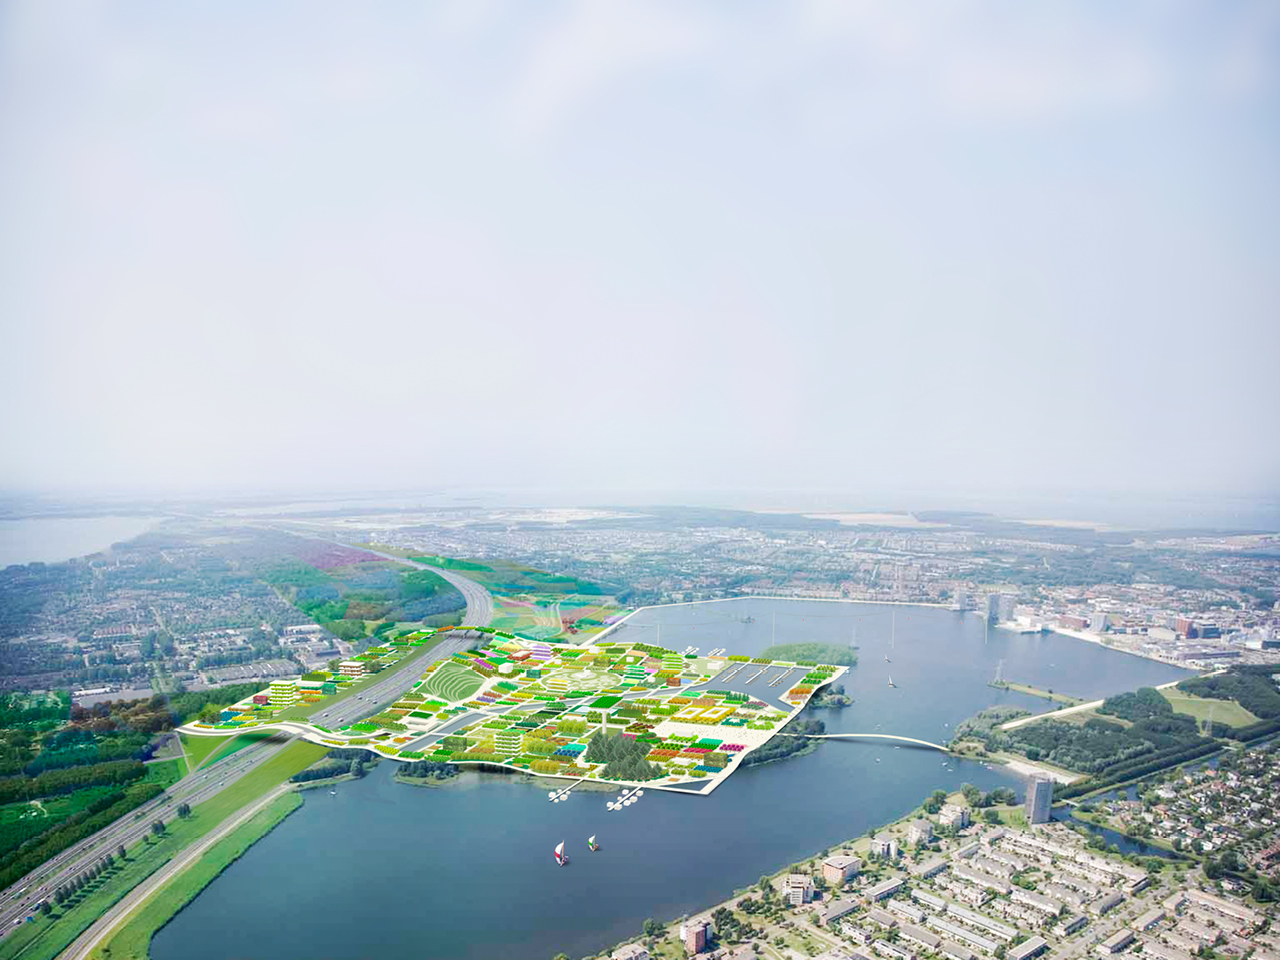 Construction begins on infrastructure for Almere Floriade 2022